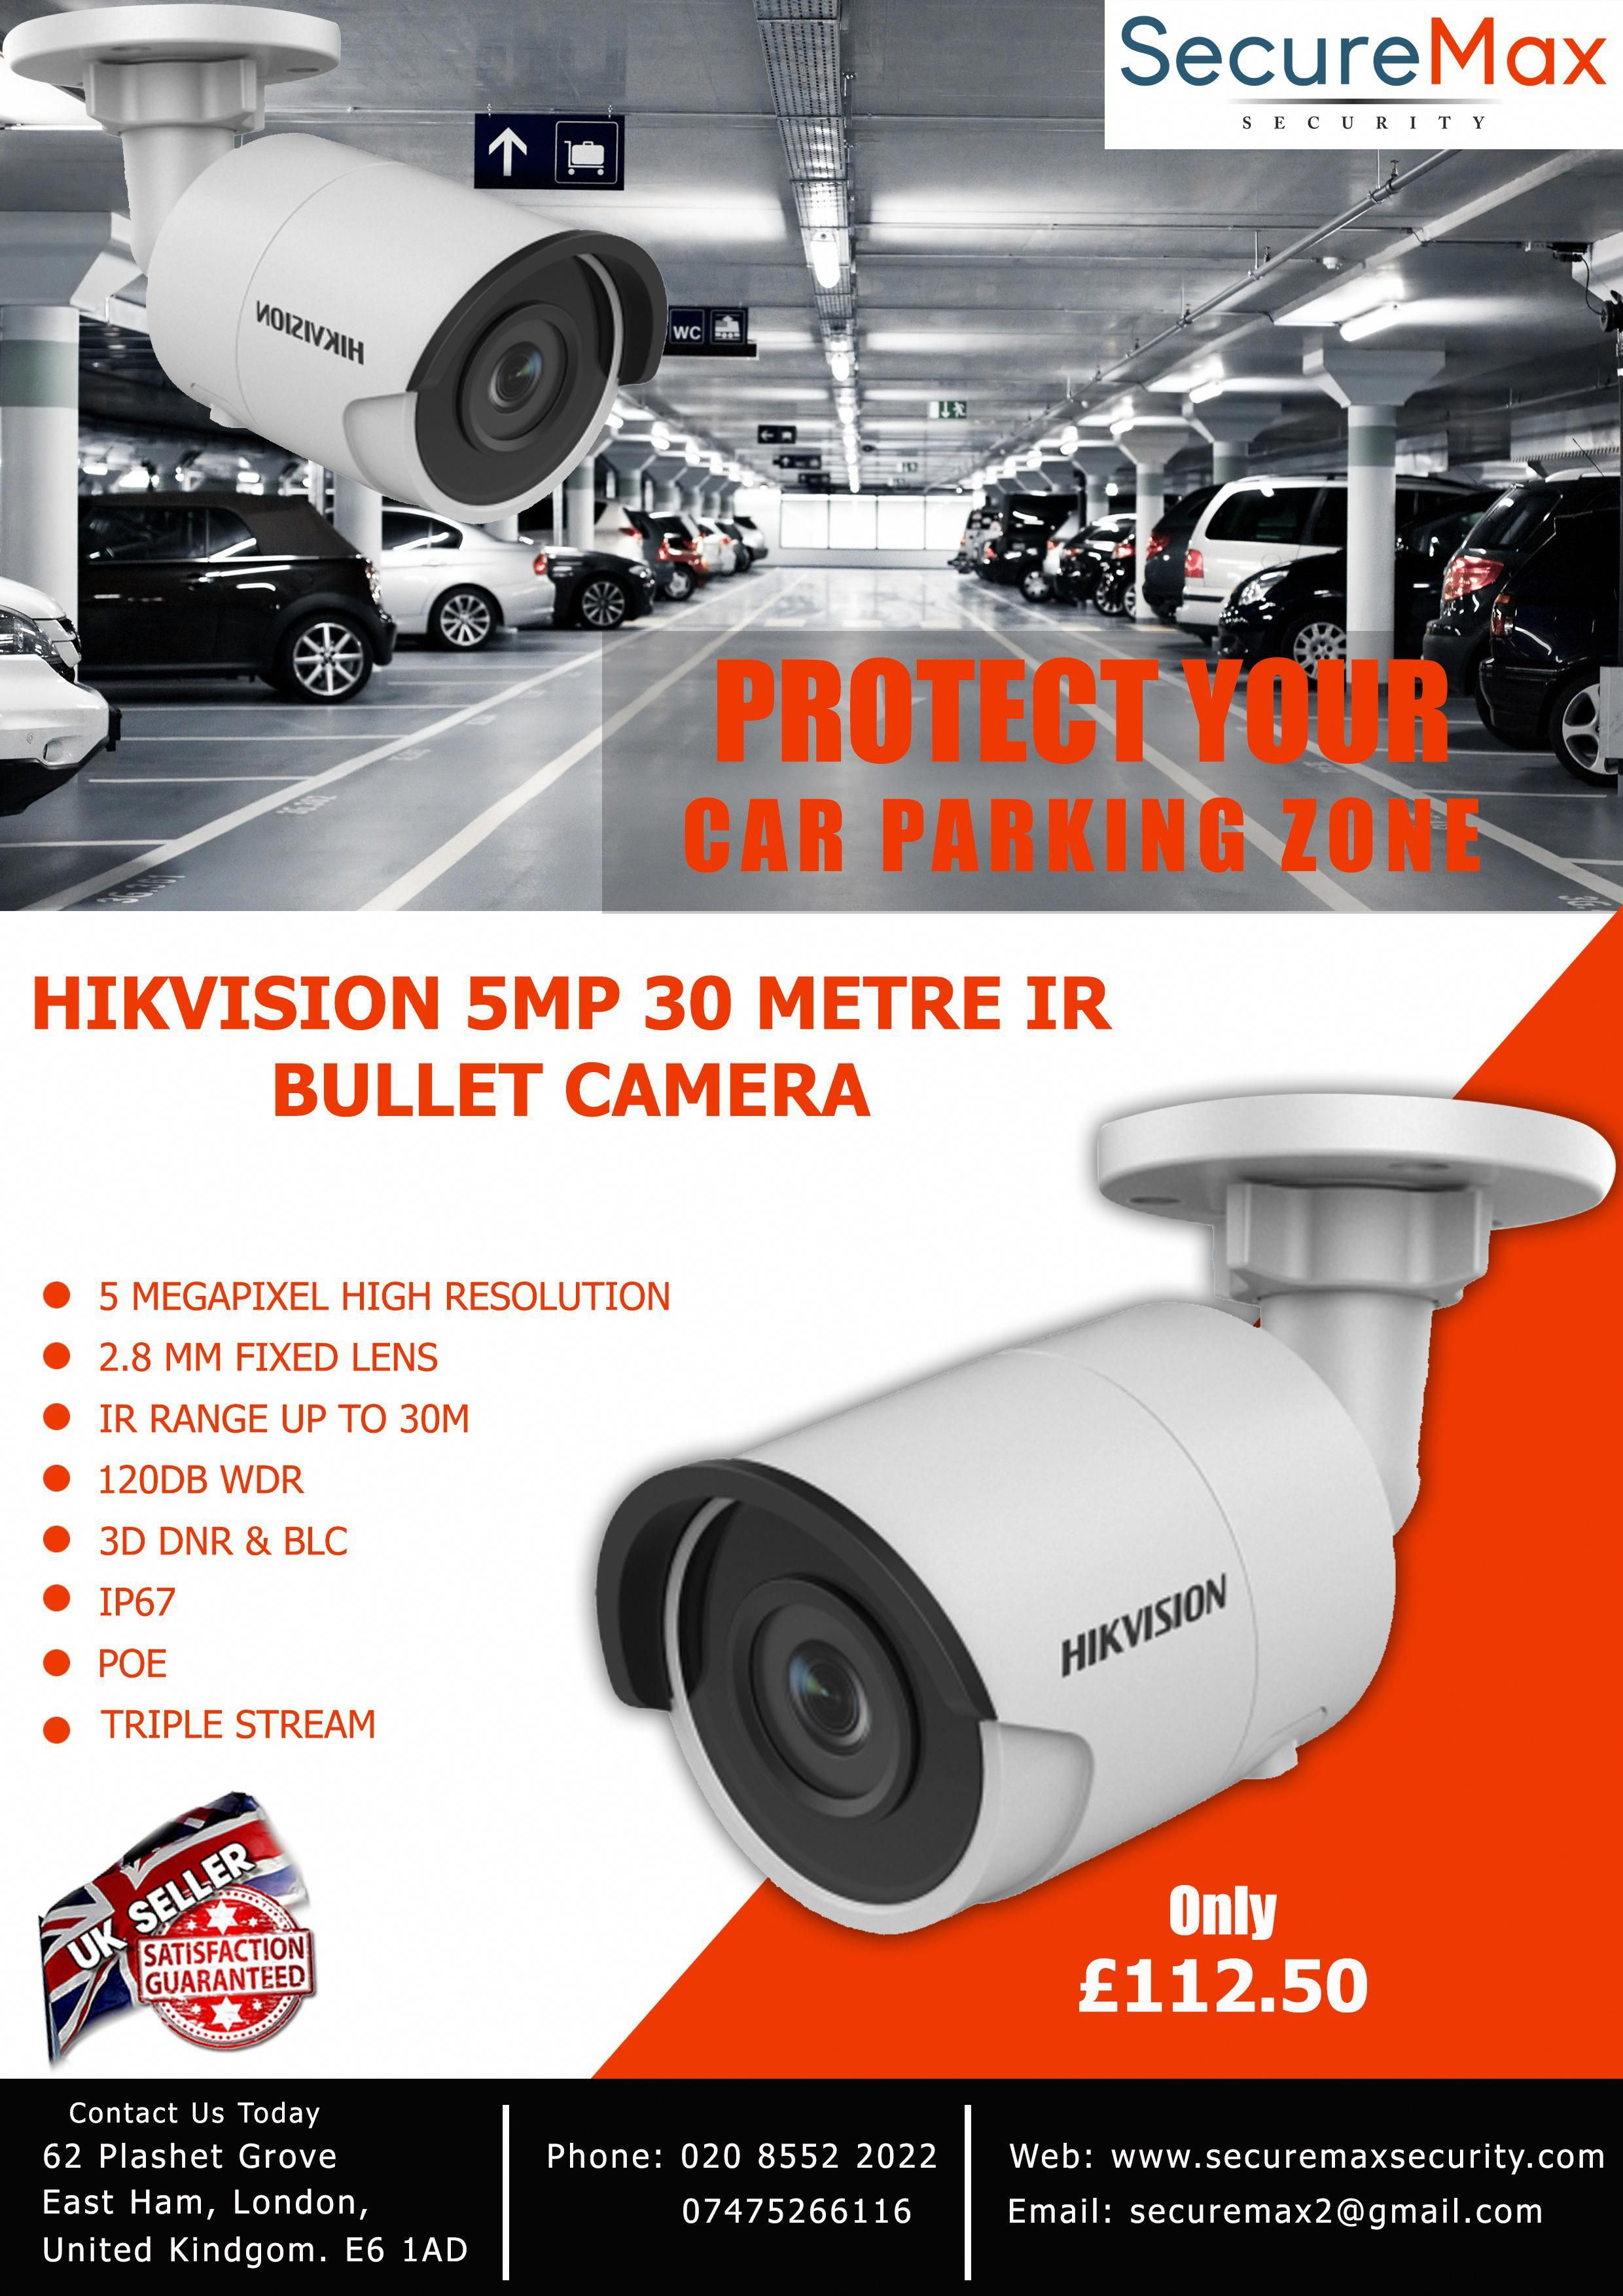 Hikvision 5 Megapixel Cctv Bullet Camera Seller In Uk Wireless Home Security Systems Bullet Camera Home Security Tips